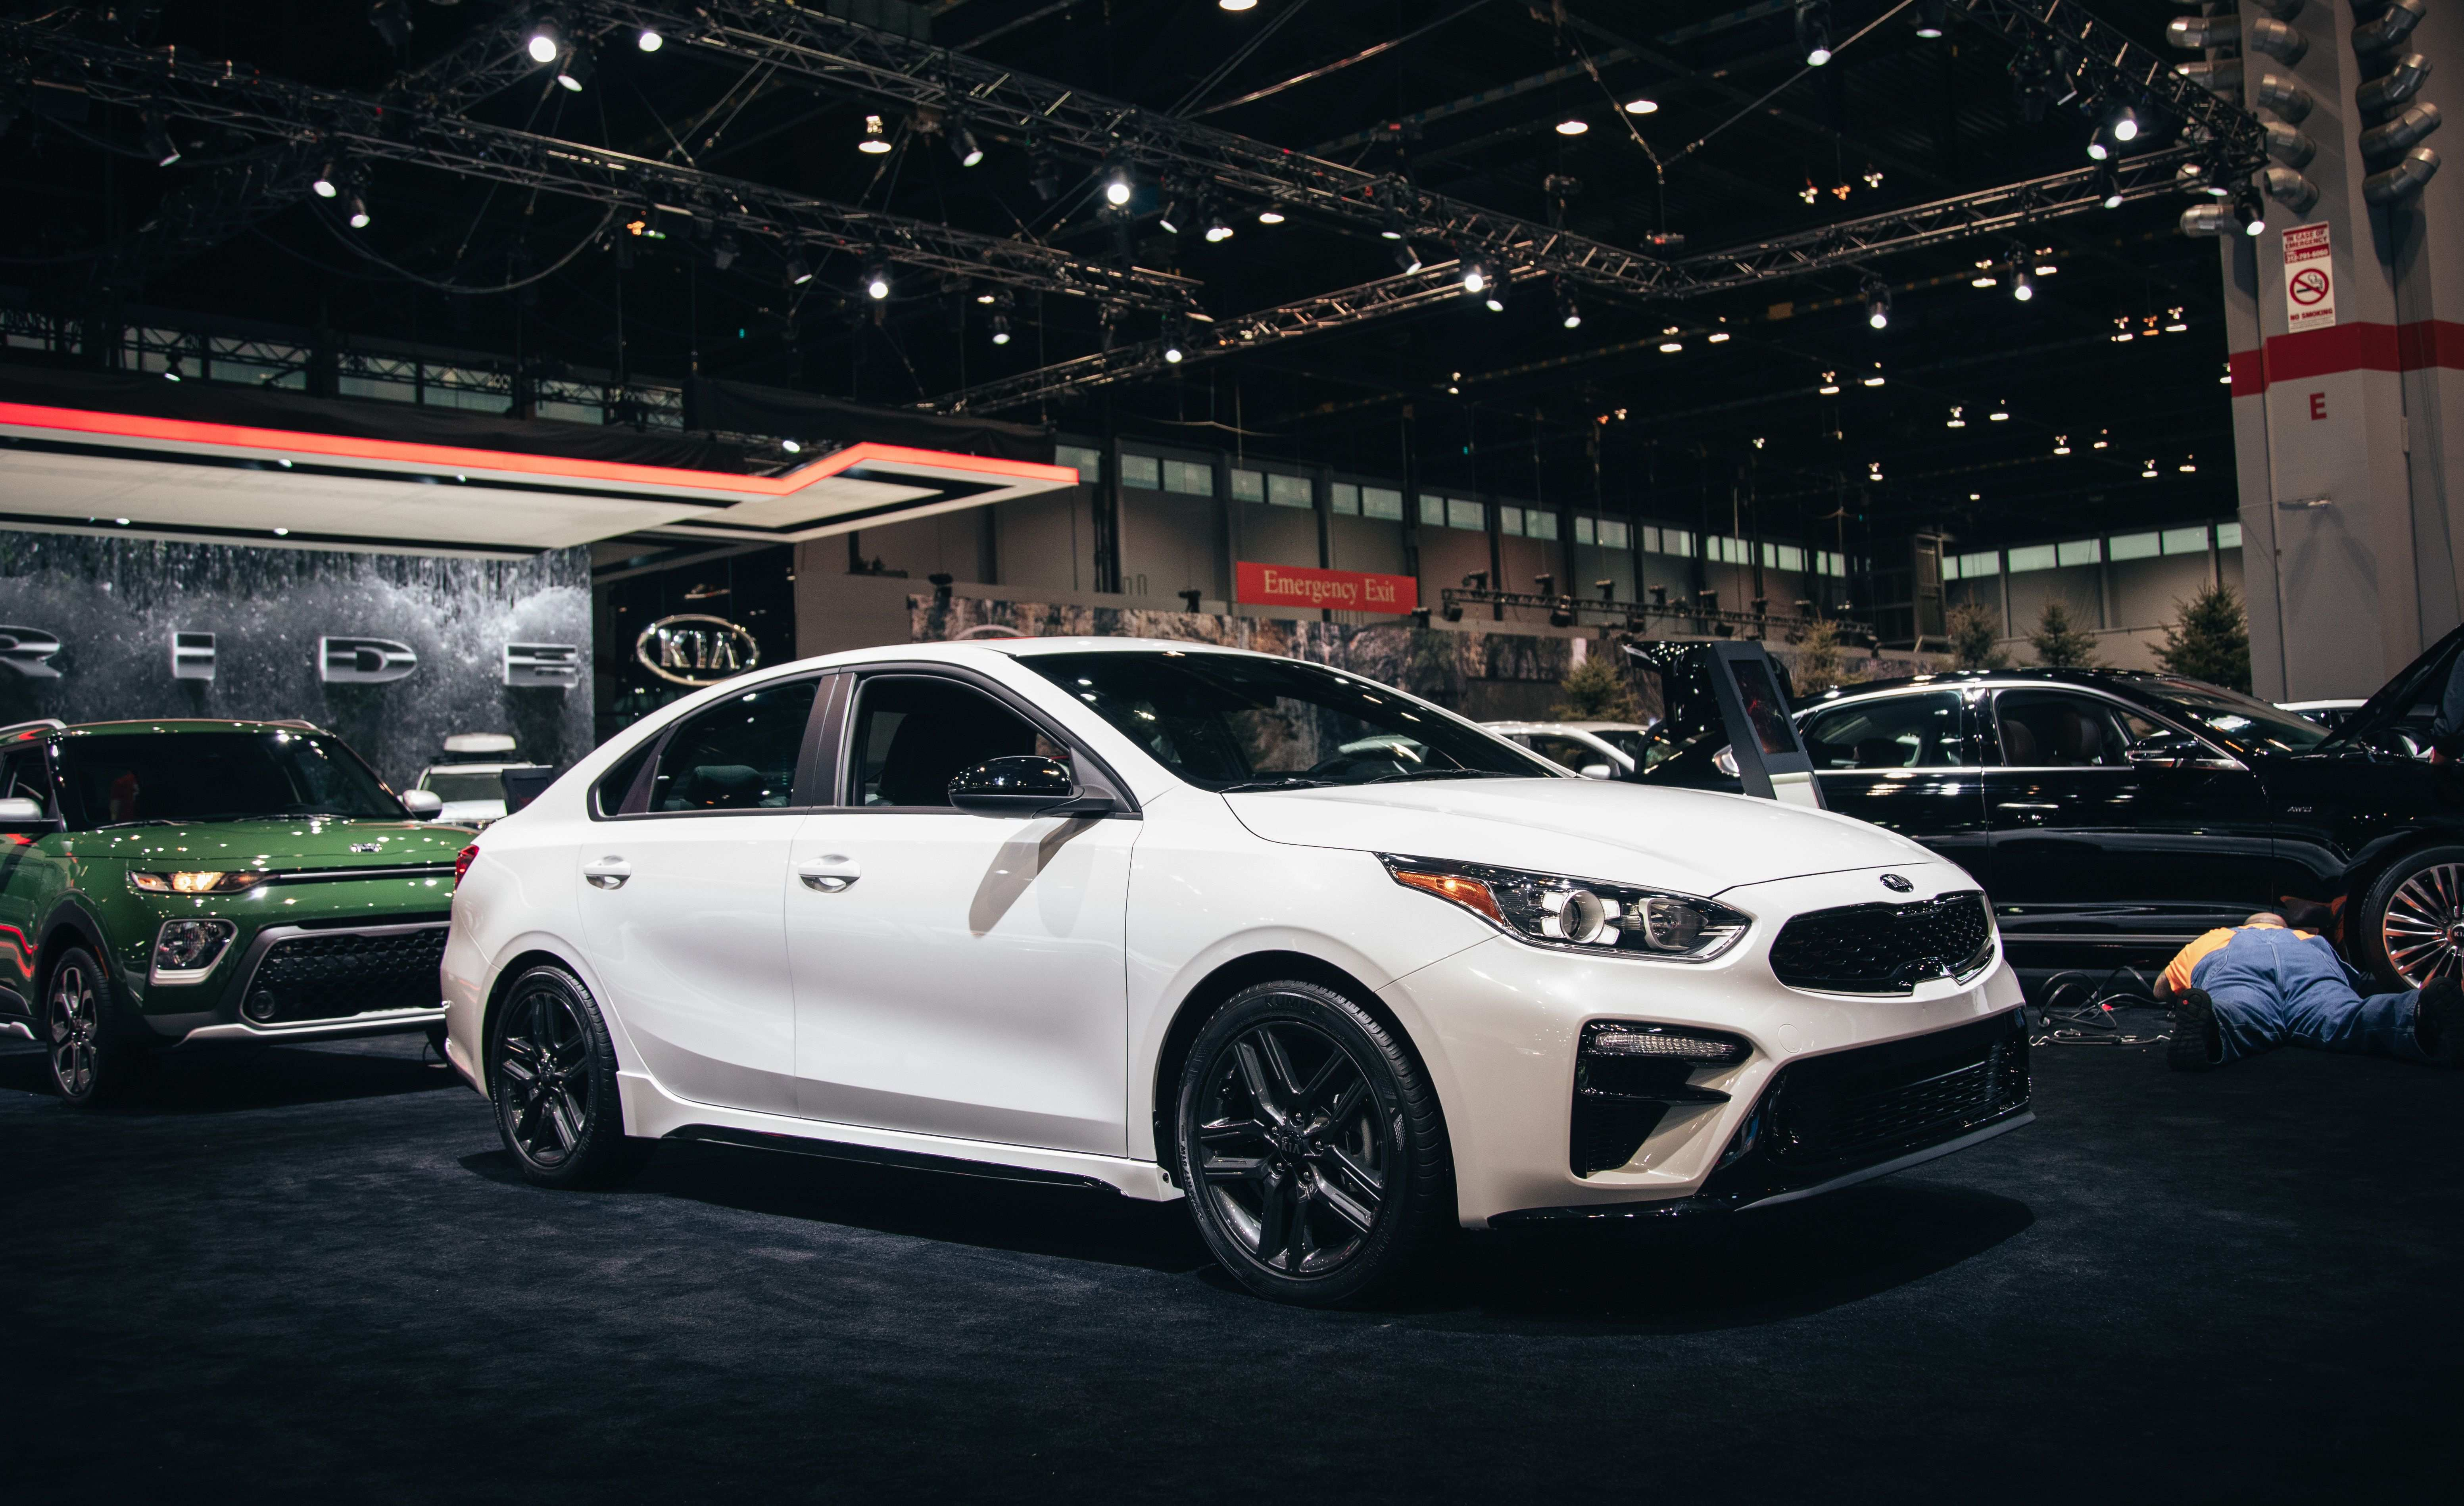 68 Gallery of 2020 Kia Forte Hatchback Prices with 2020 Kia Forte Hatchback